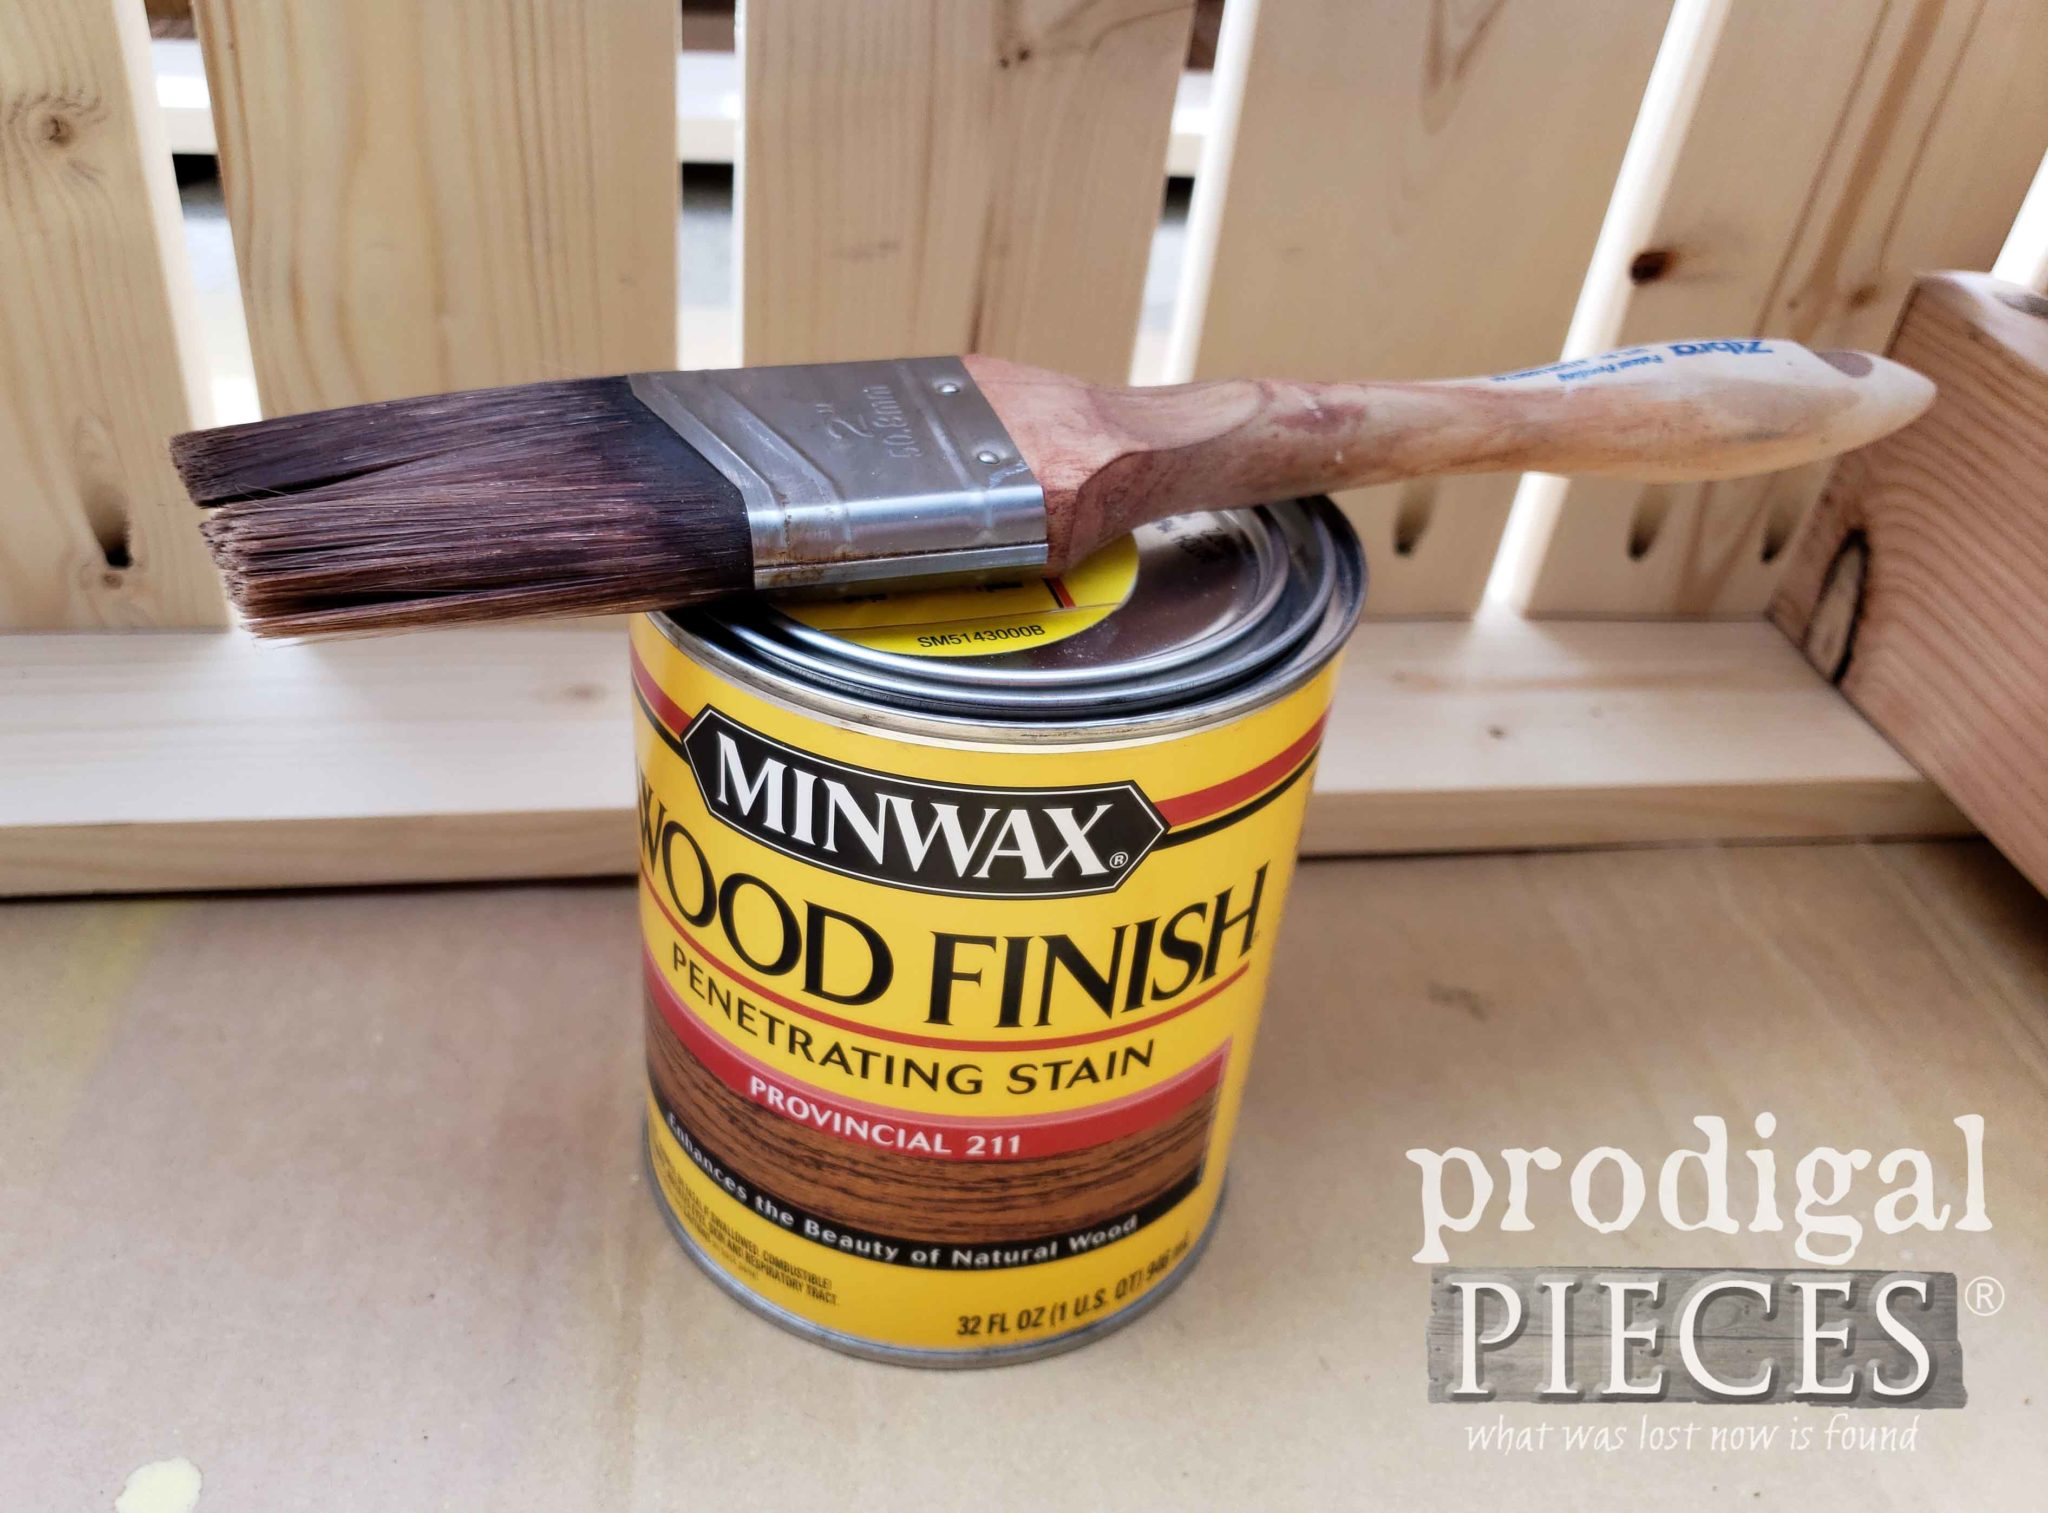 Minwax Provincial Stain for Reclaimed Workbench built by Larissa of Prodigal Pieces | prodigalpieces.com